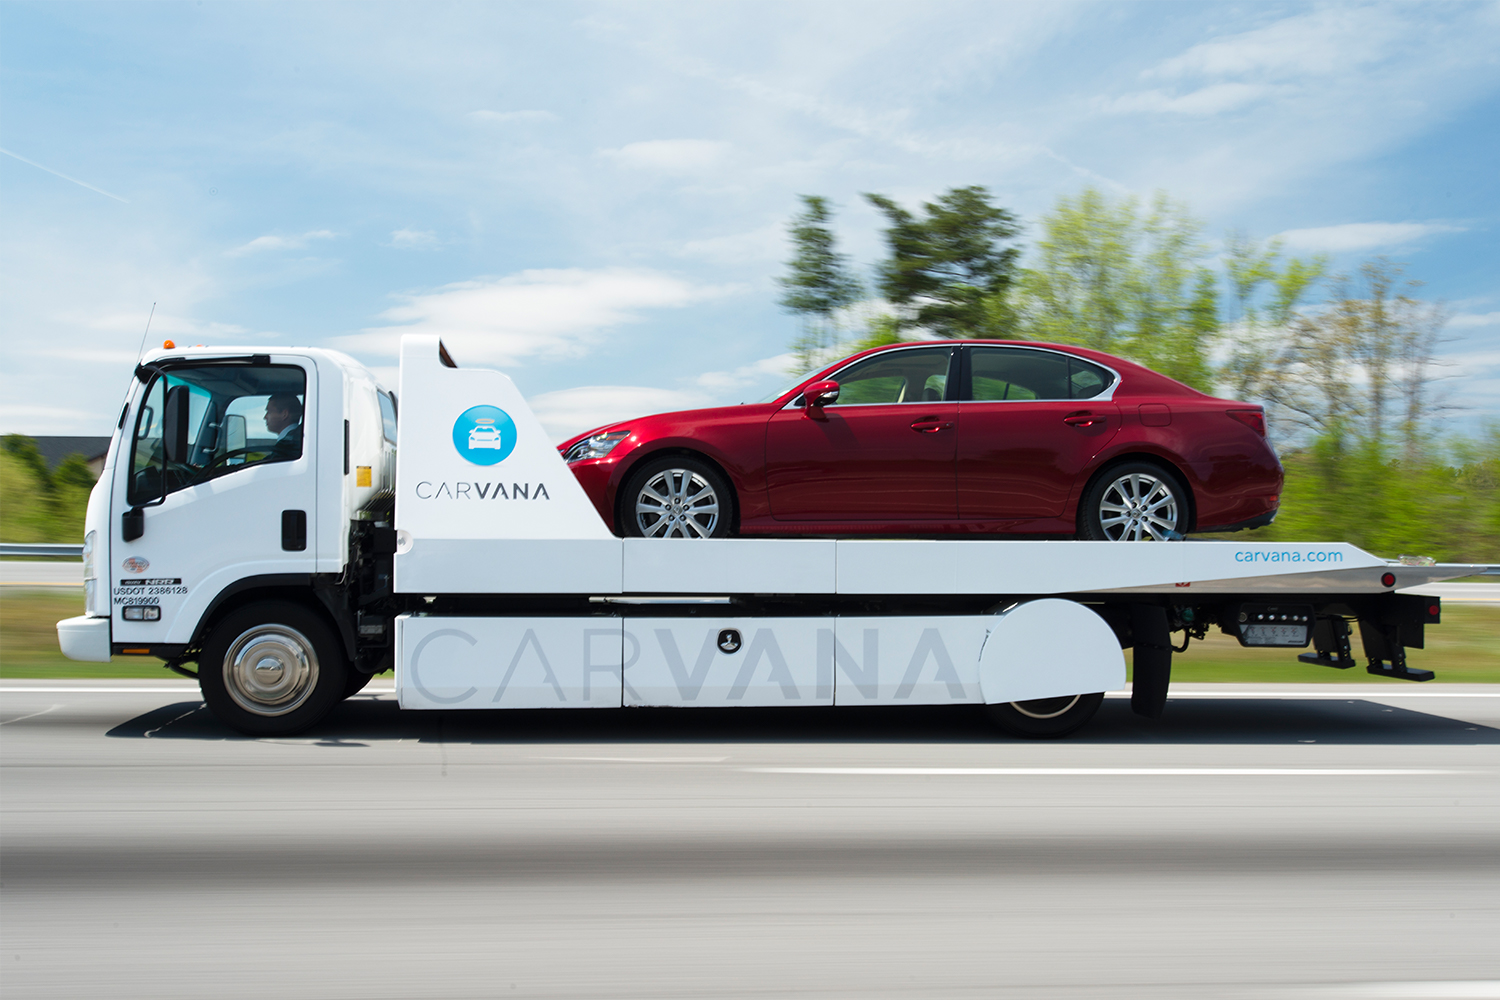 Red car on the back of a Carvana delivery vehicle